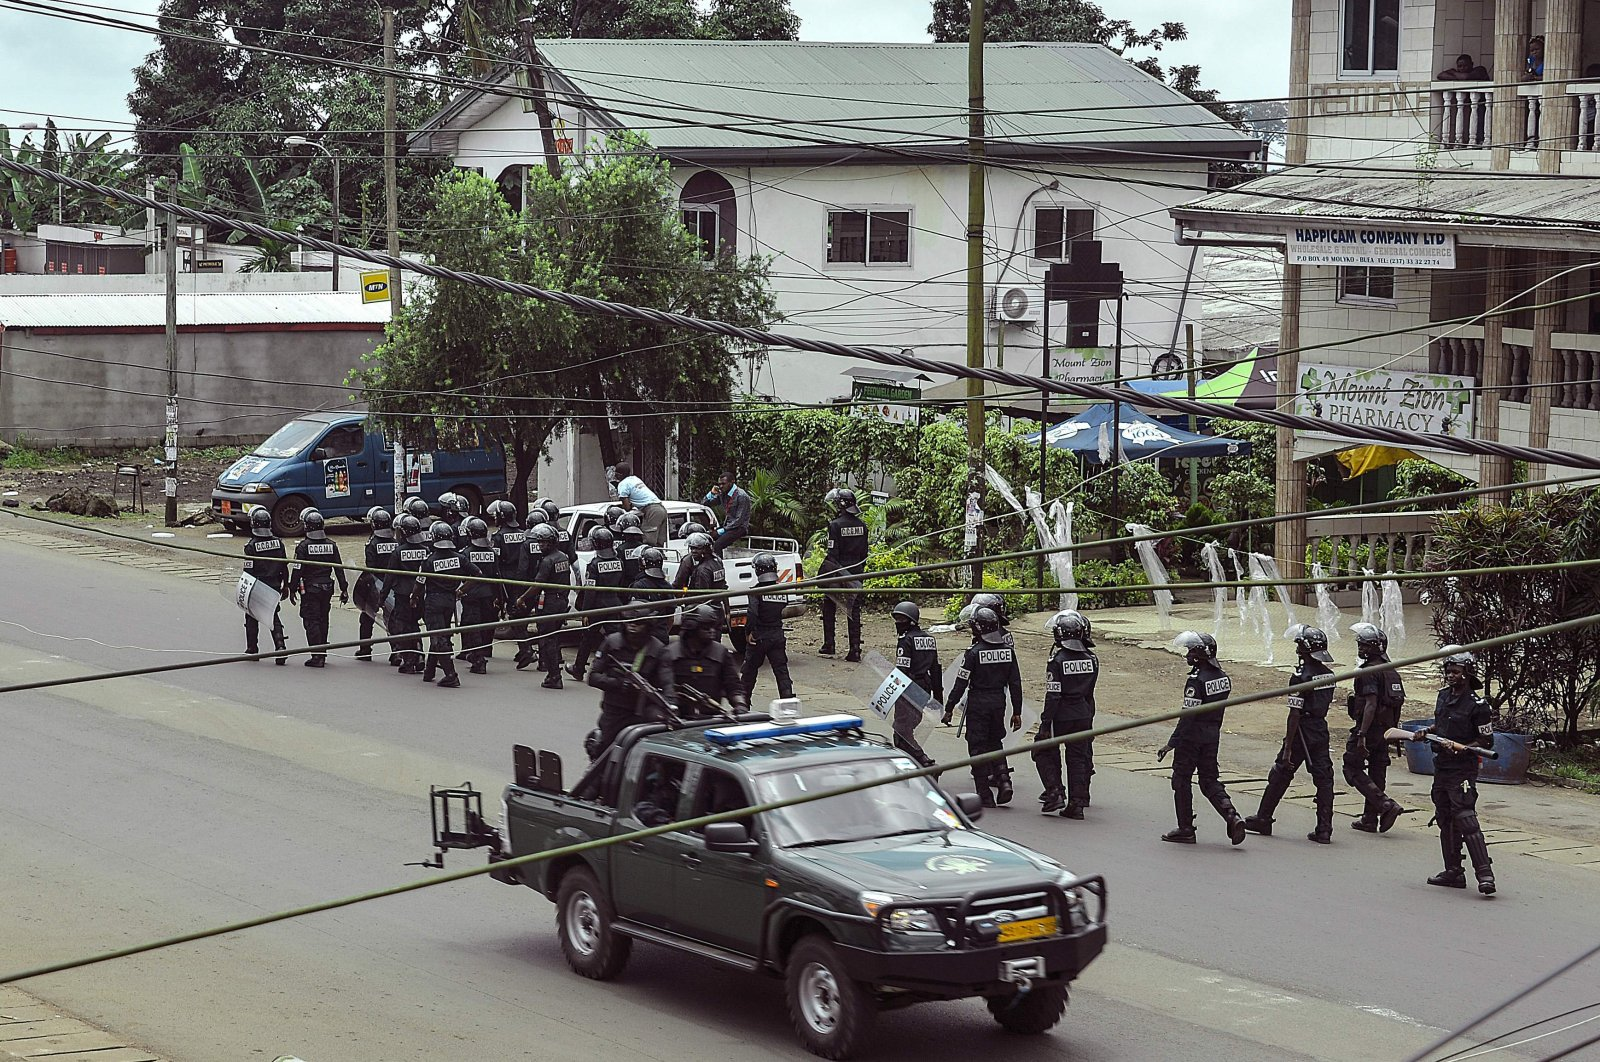 Cameroon police officials with riot equipment patrol along a street in the administrative quarter of Buea some 60 kilometers (37.2 miles) west of Douala on Oct. 1, 2017. (AFP Photo)